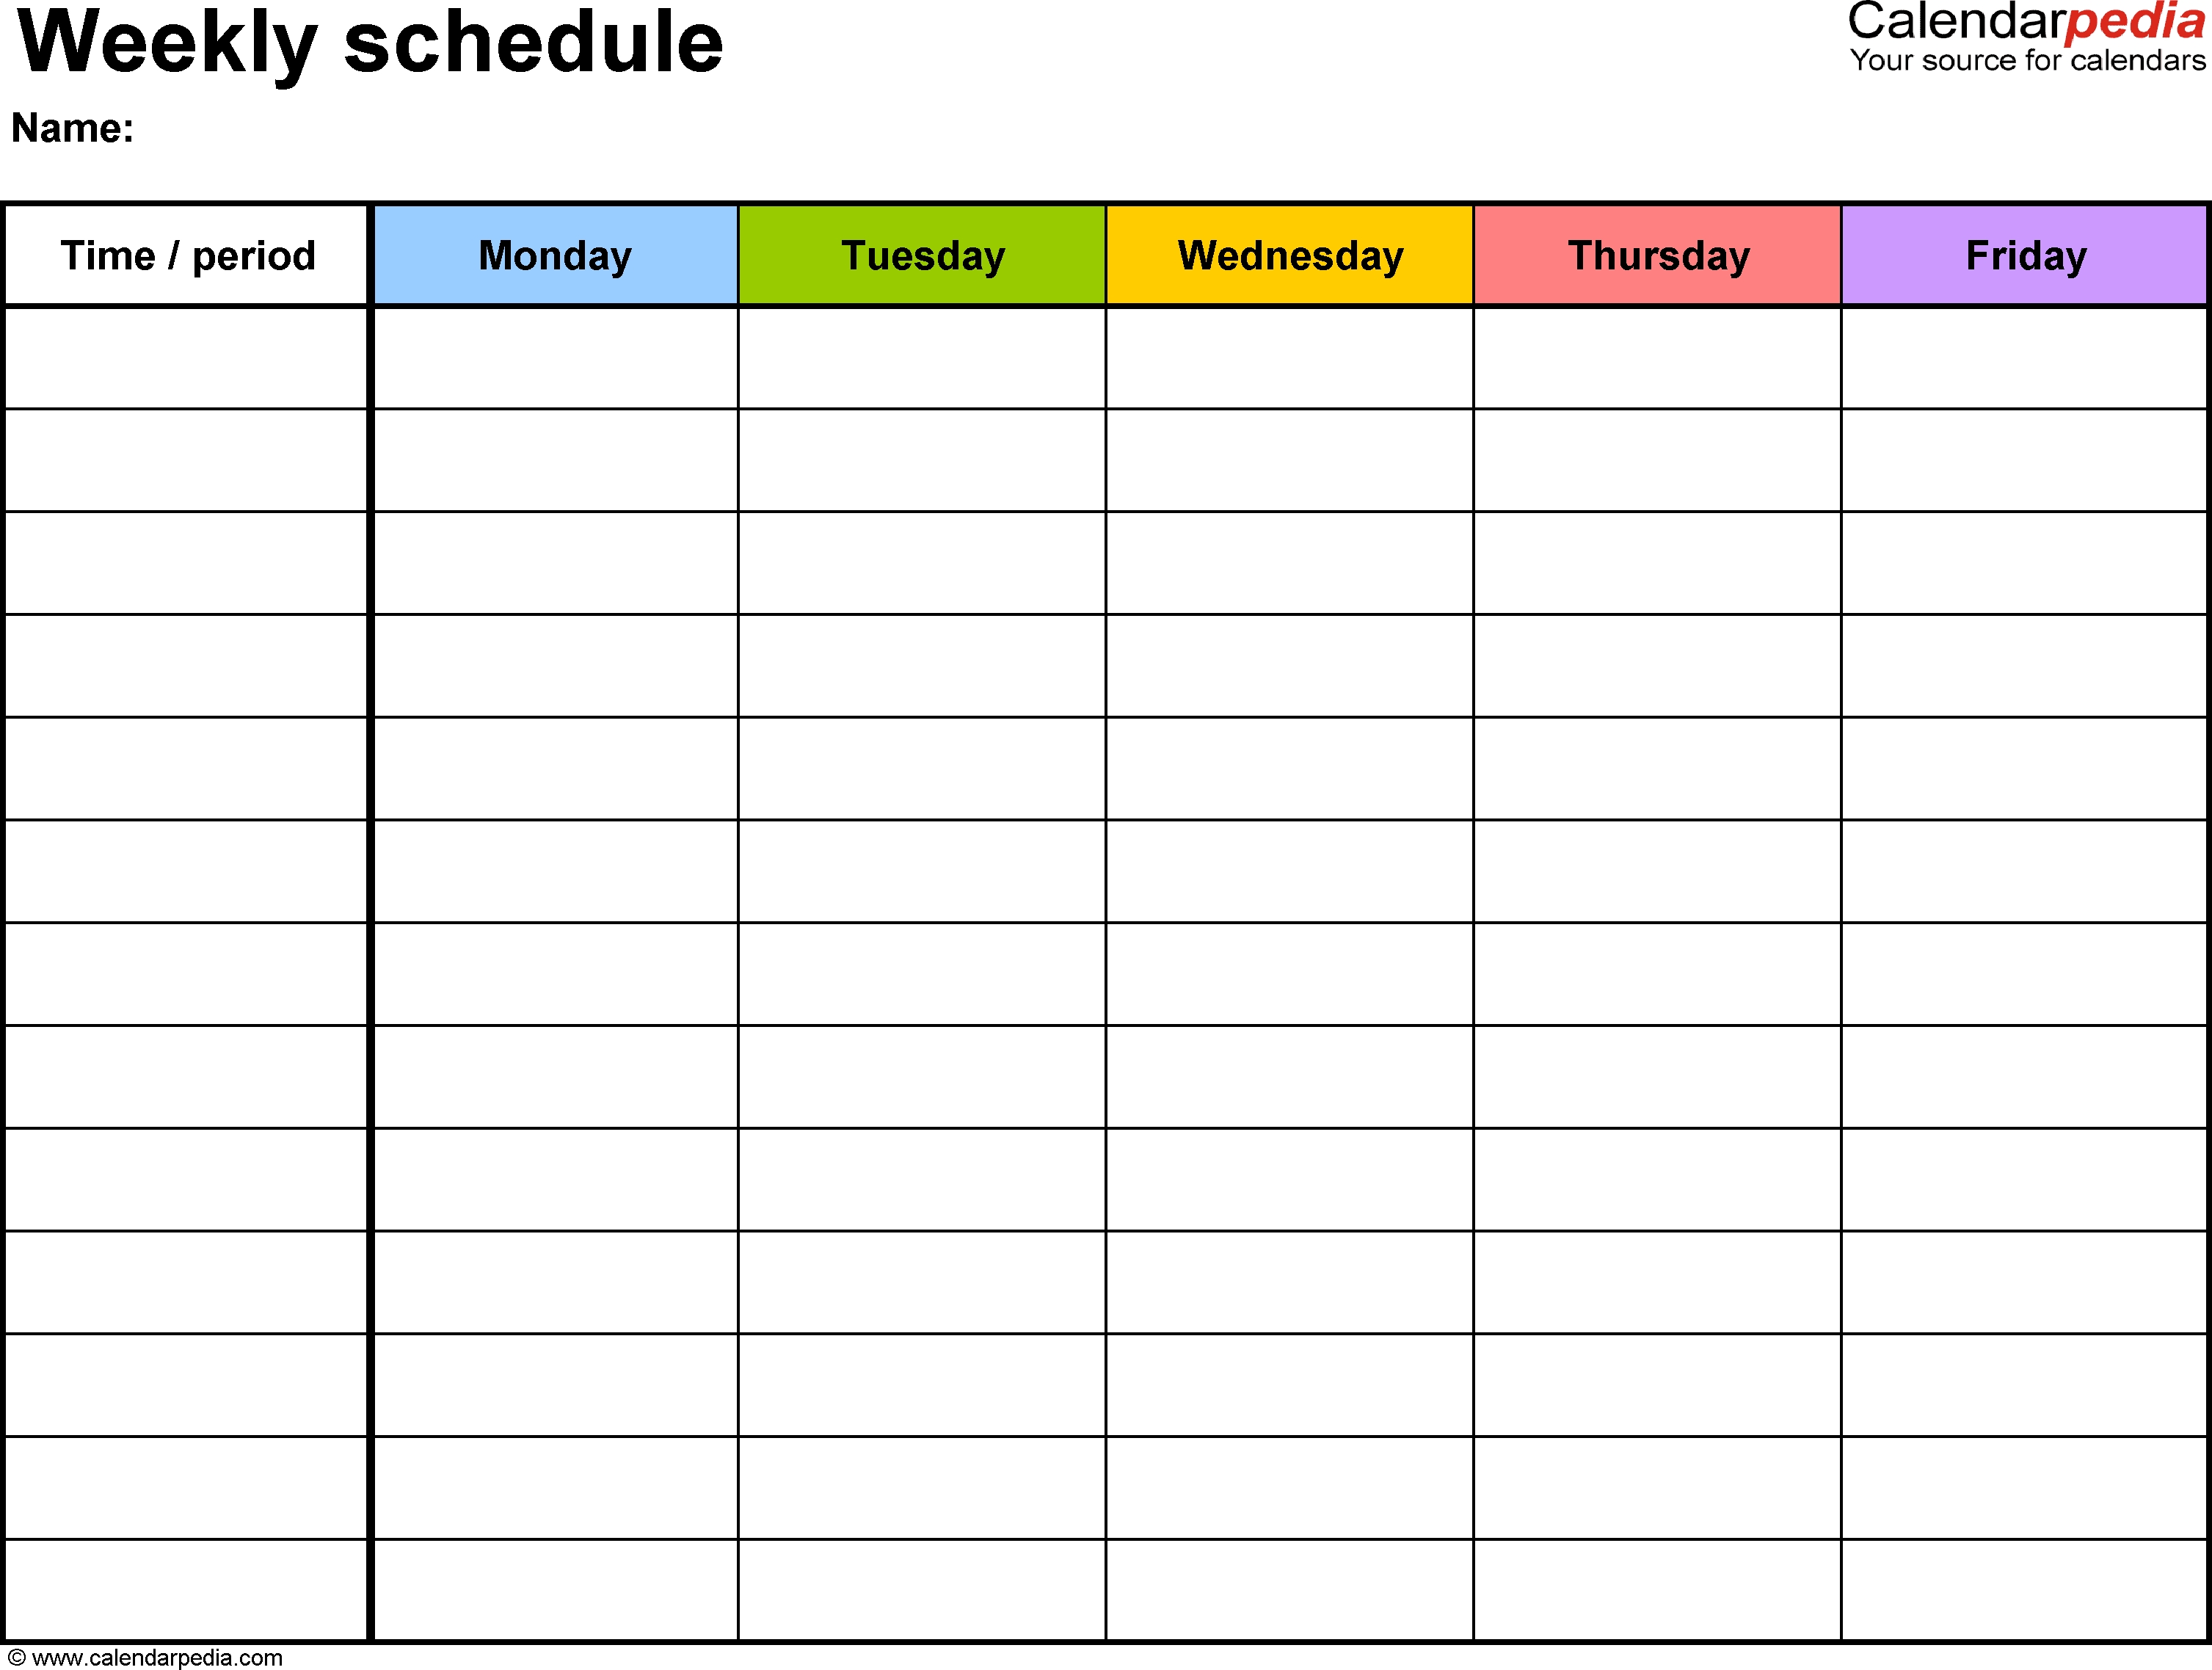 Free Weekly Schedule Templates For Excel - 18 Templates-Template Printable Calendar 5 Weeks